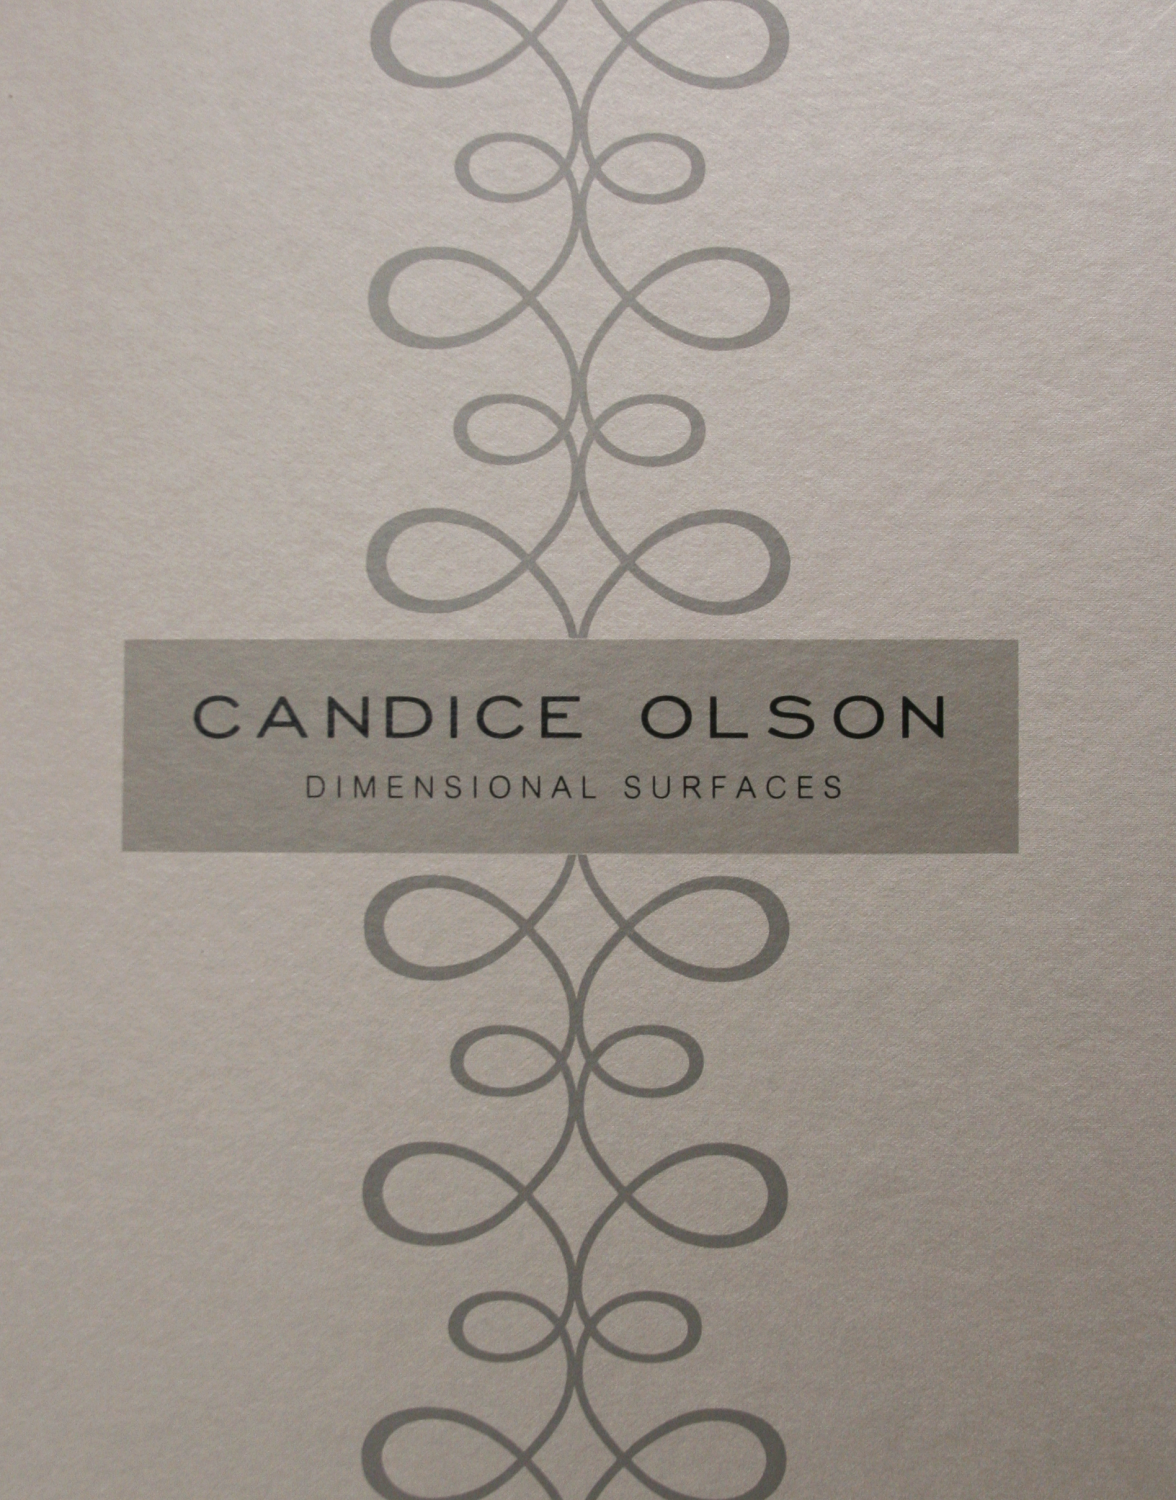 Candice Olson Dimensional Surfaces